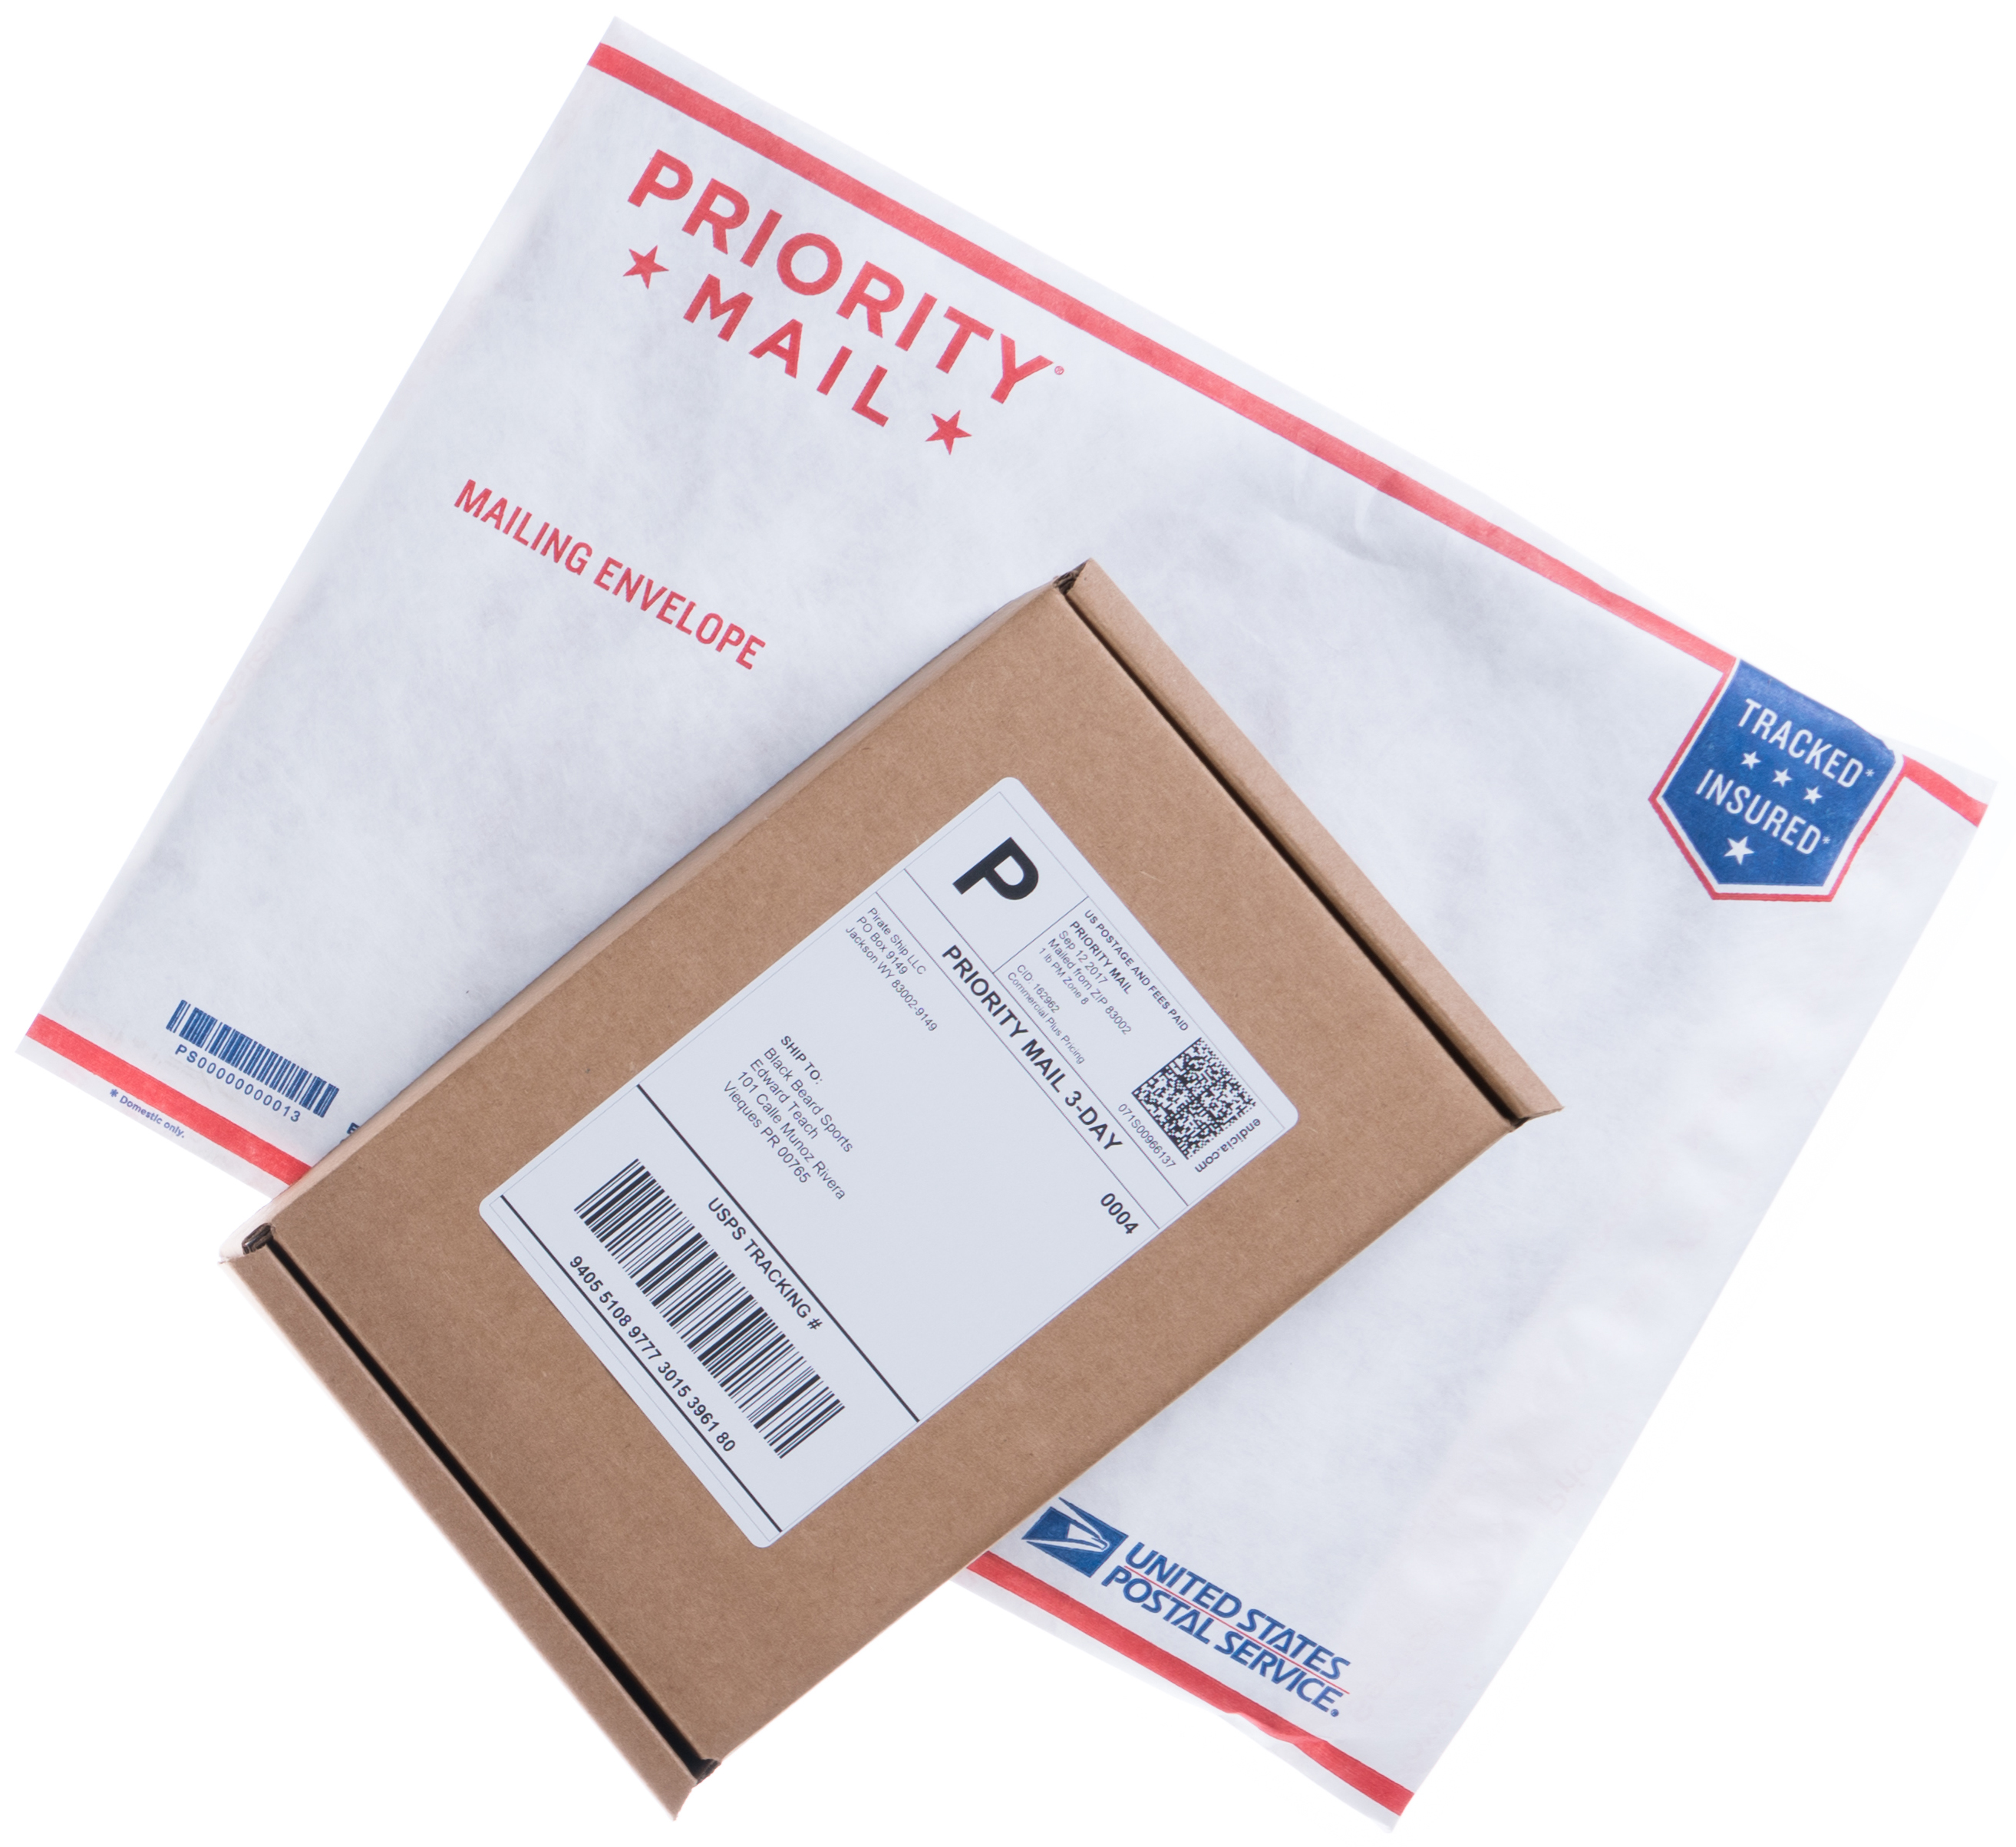 Shipping box and Priority Mail shipping envelope